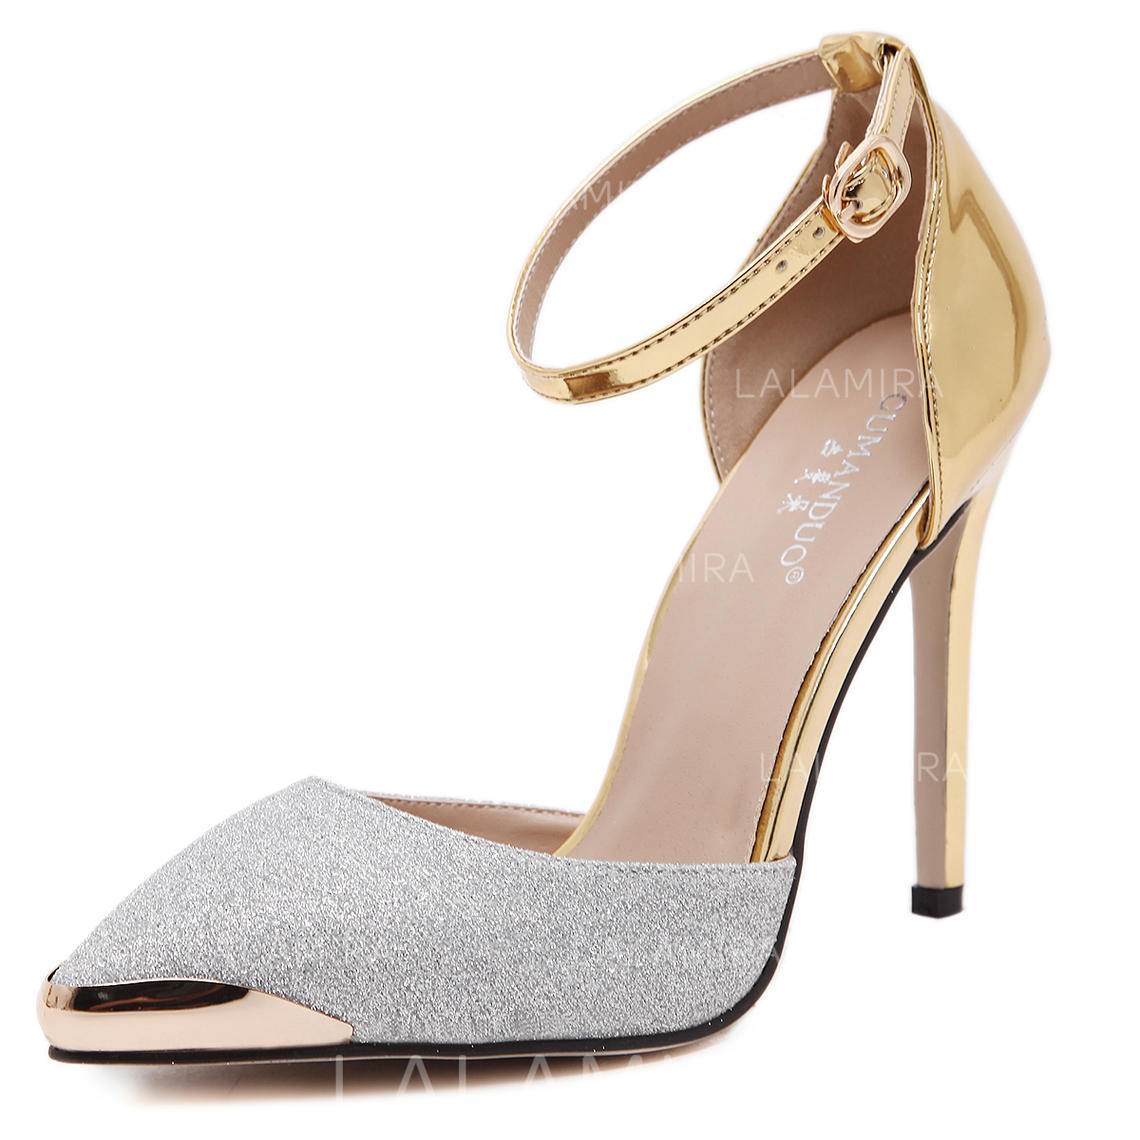 fb158679559 Women s Closed Toe Pumps Sandals Stiletto Heel Leatherette With Buckle Sparkling  Glitter Wedding Shoes (047208045. Loading zoom